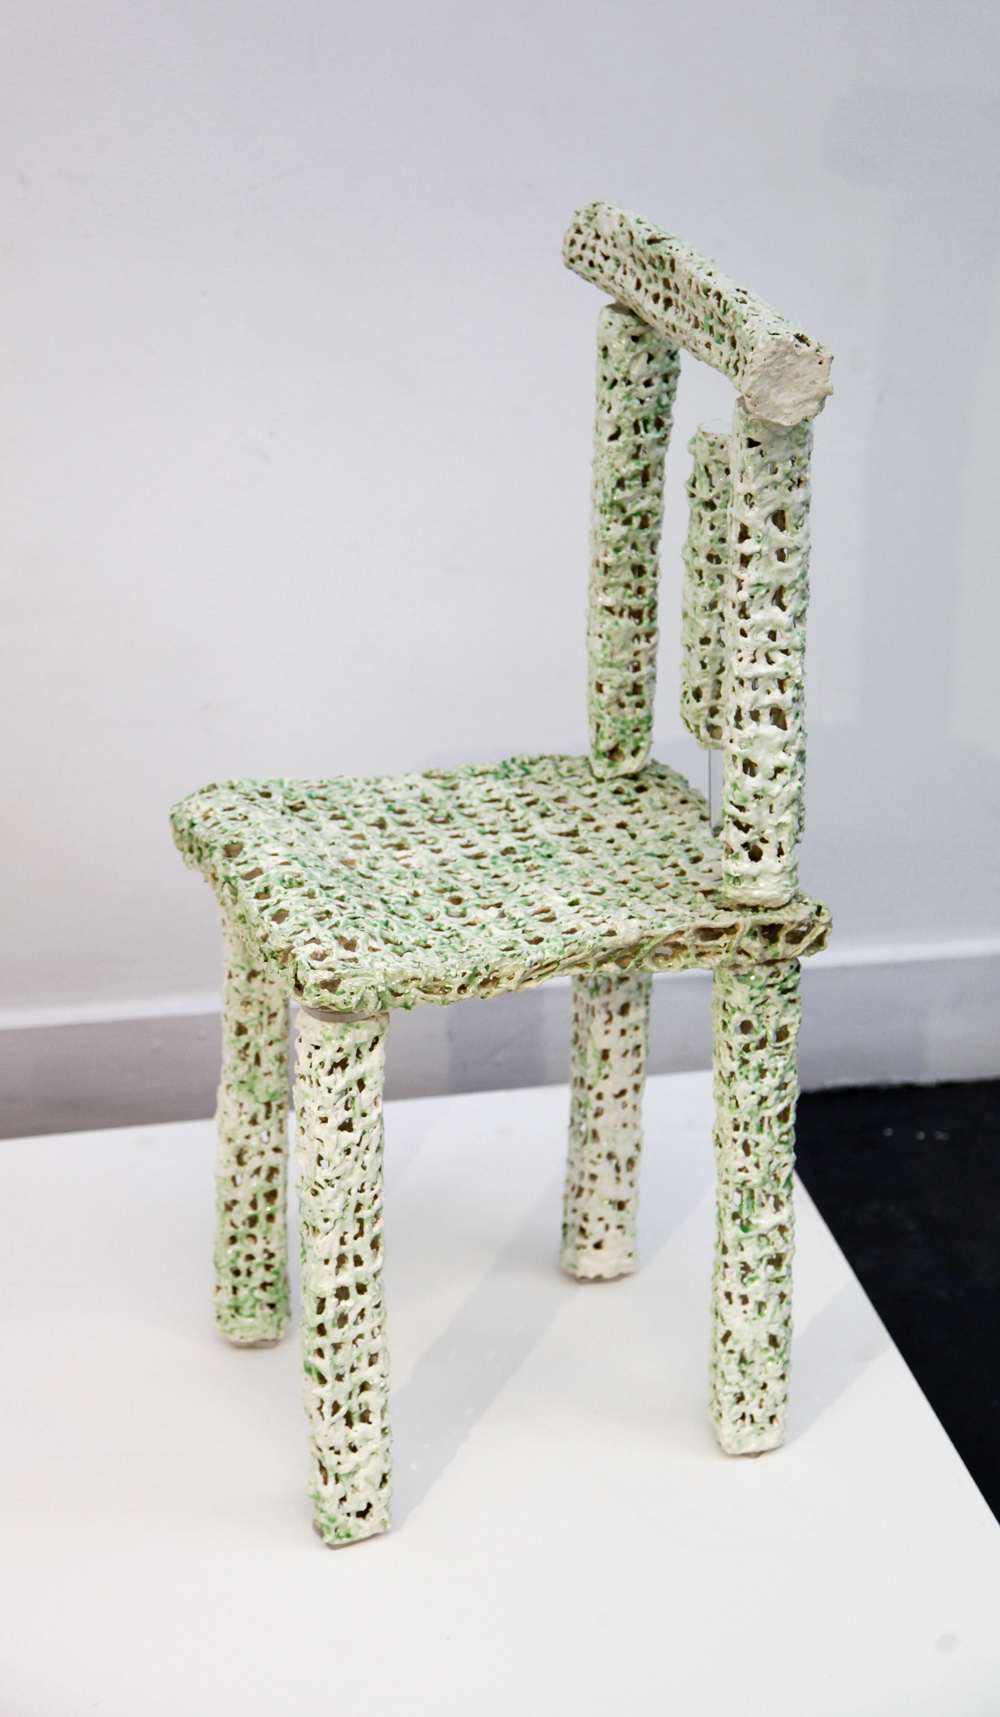 As for Living IV, Stoneware woven clay chair, 90cm (H) x 40 cm (W) x 42 (D)